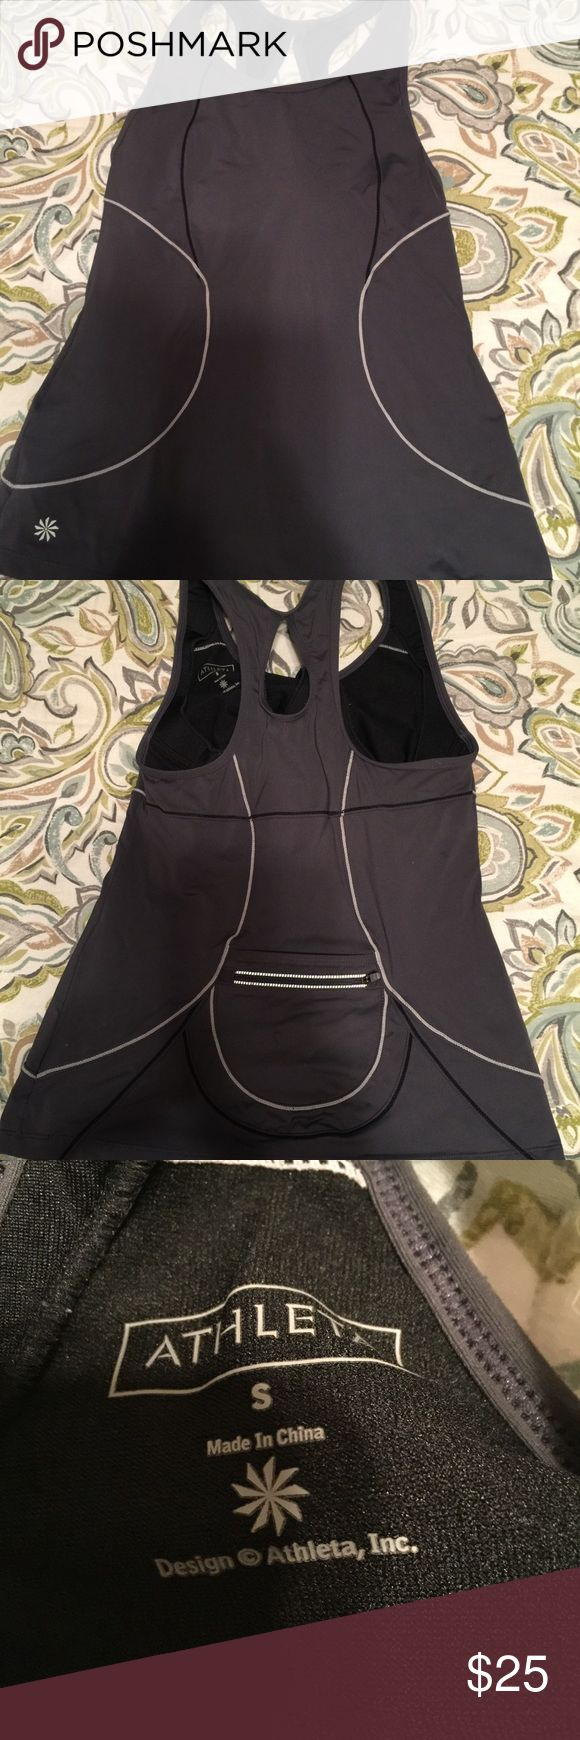 Athleta gray athletic top size small Athleta gray athletic top size small   This is a great athletic top with razor back and zippered back pocket. It is in great shape. Please view all pictures. Athleta Tops Tank Tops